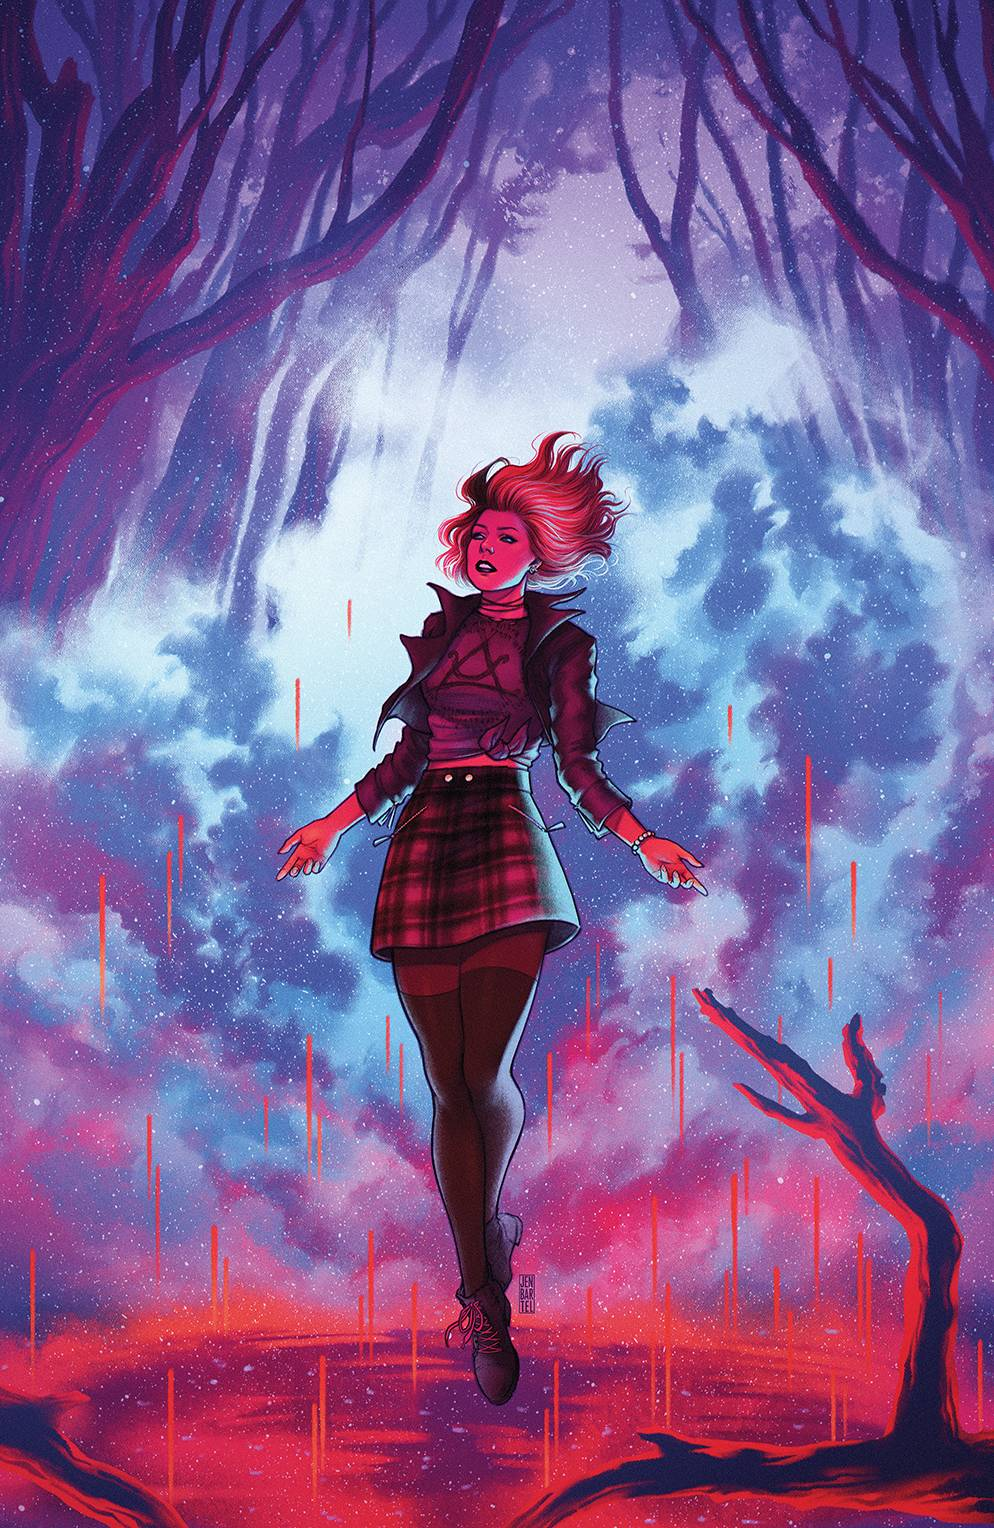 Buffy The Vampire Slayer: Willow #2 (2020)